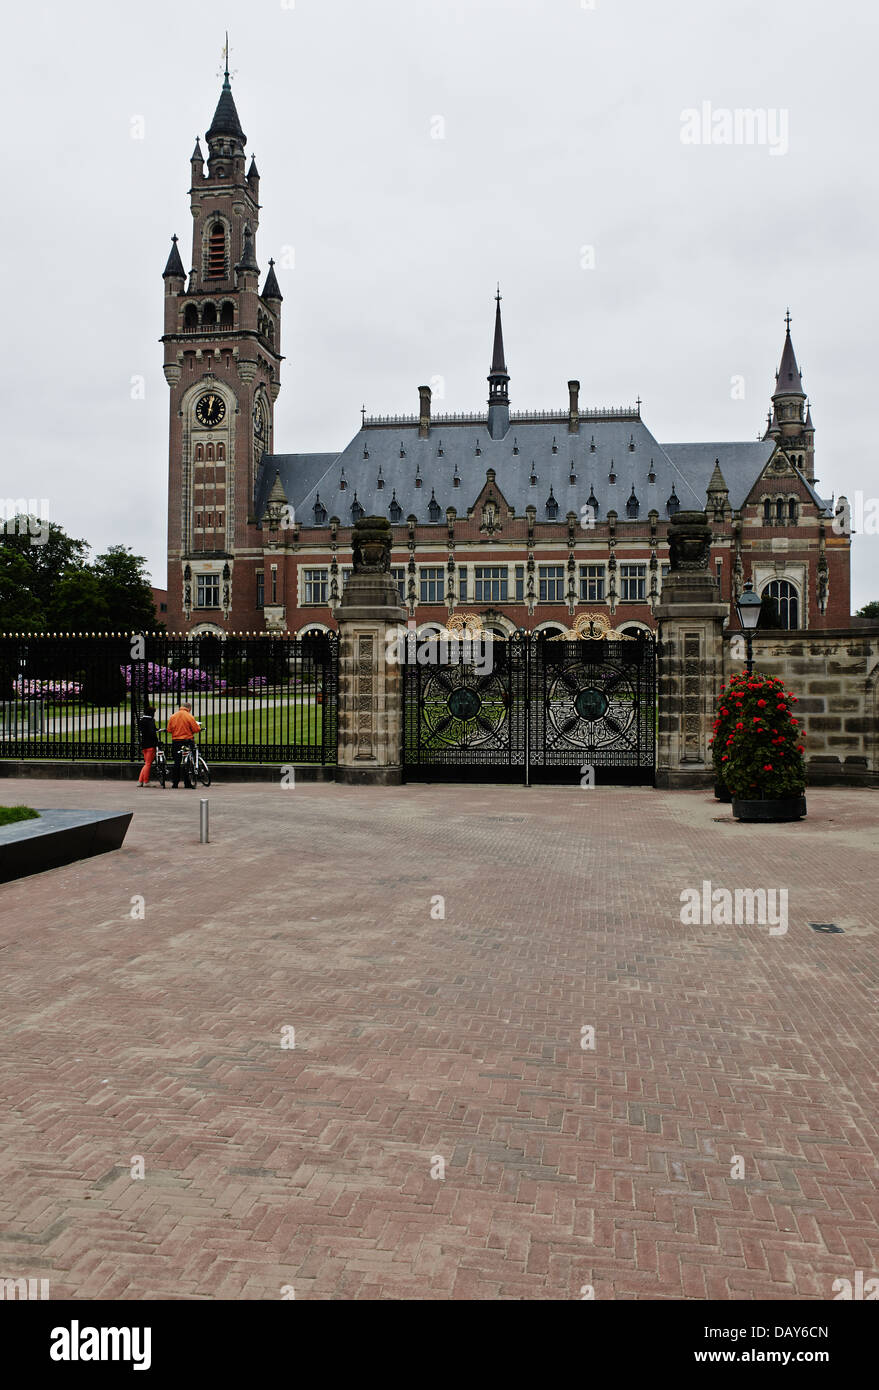 View of the International Court of Justice (or World Court) in The Hague. - Stock Image